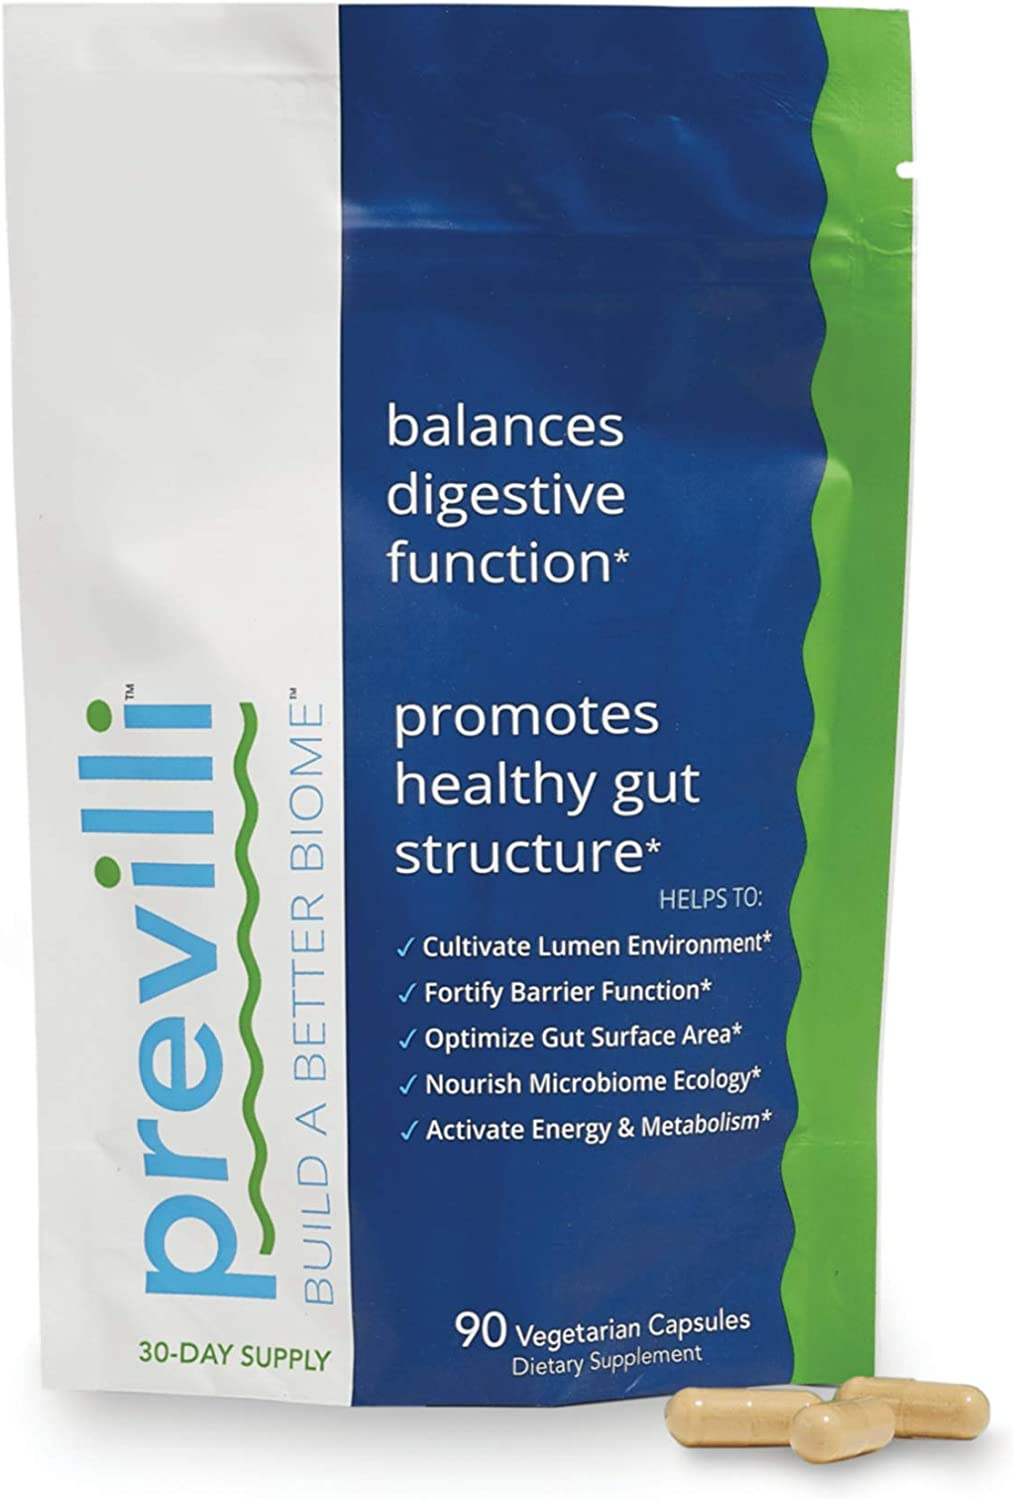 Previlli Dietary Supplement, Beyond Probiotics and Prebiotics for Women and Men, Gut Health Supplements, Supports Healthy Gut Structure and Good Bacteria (30-Day Supply)